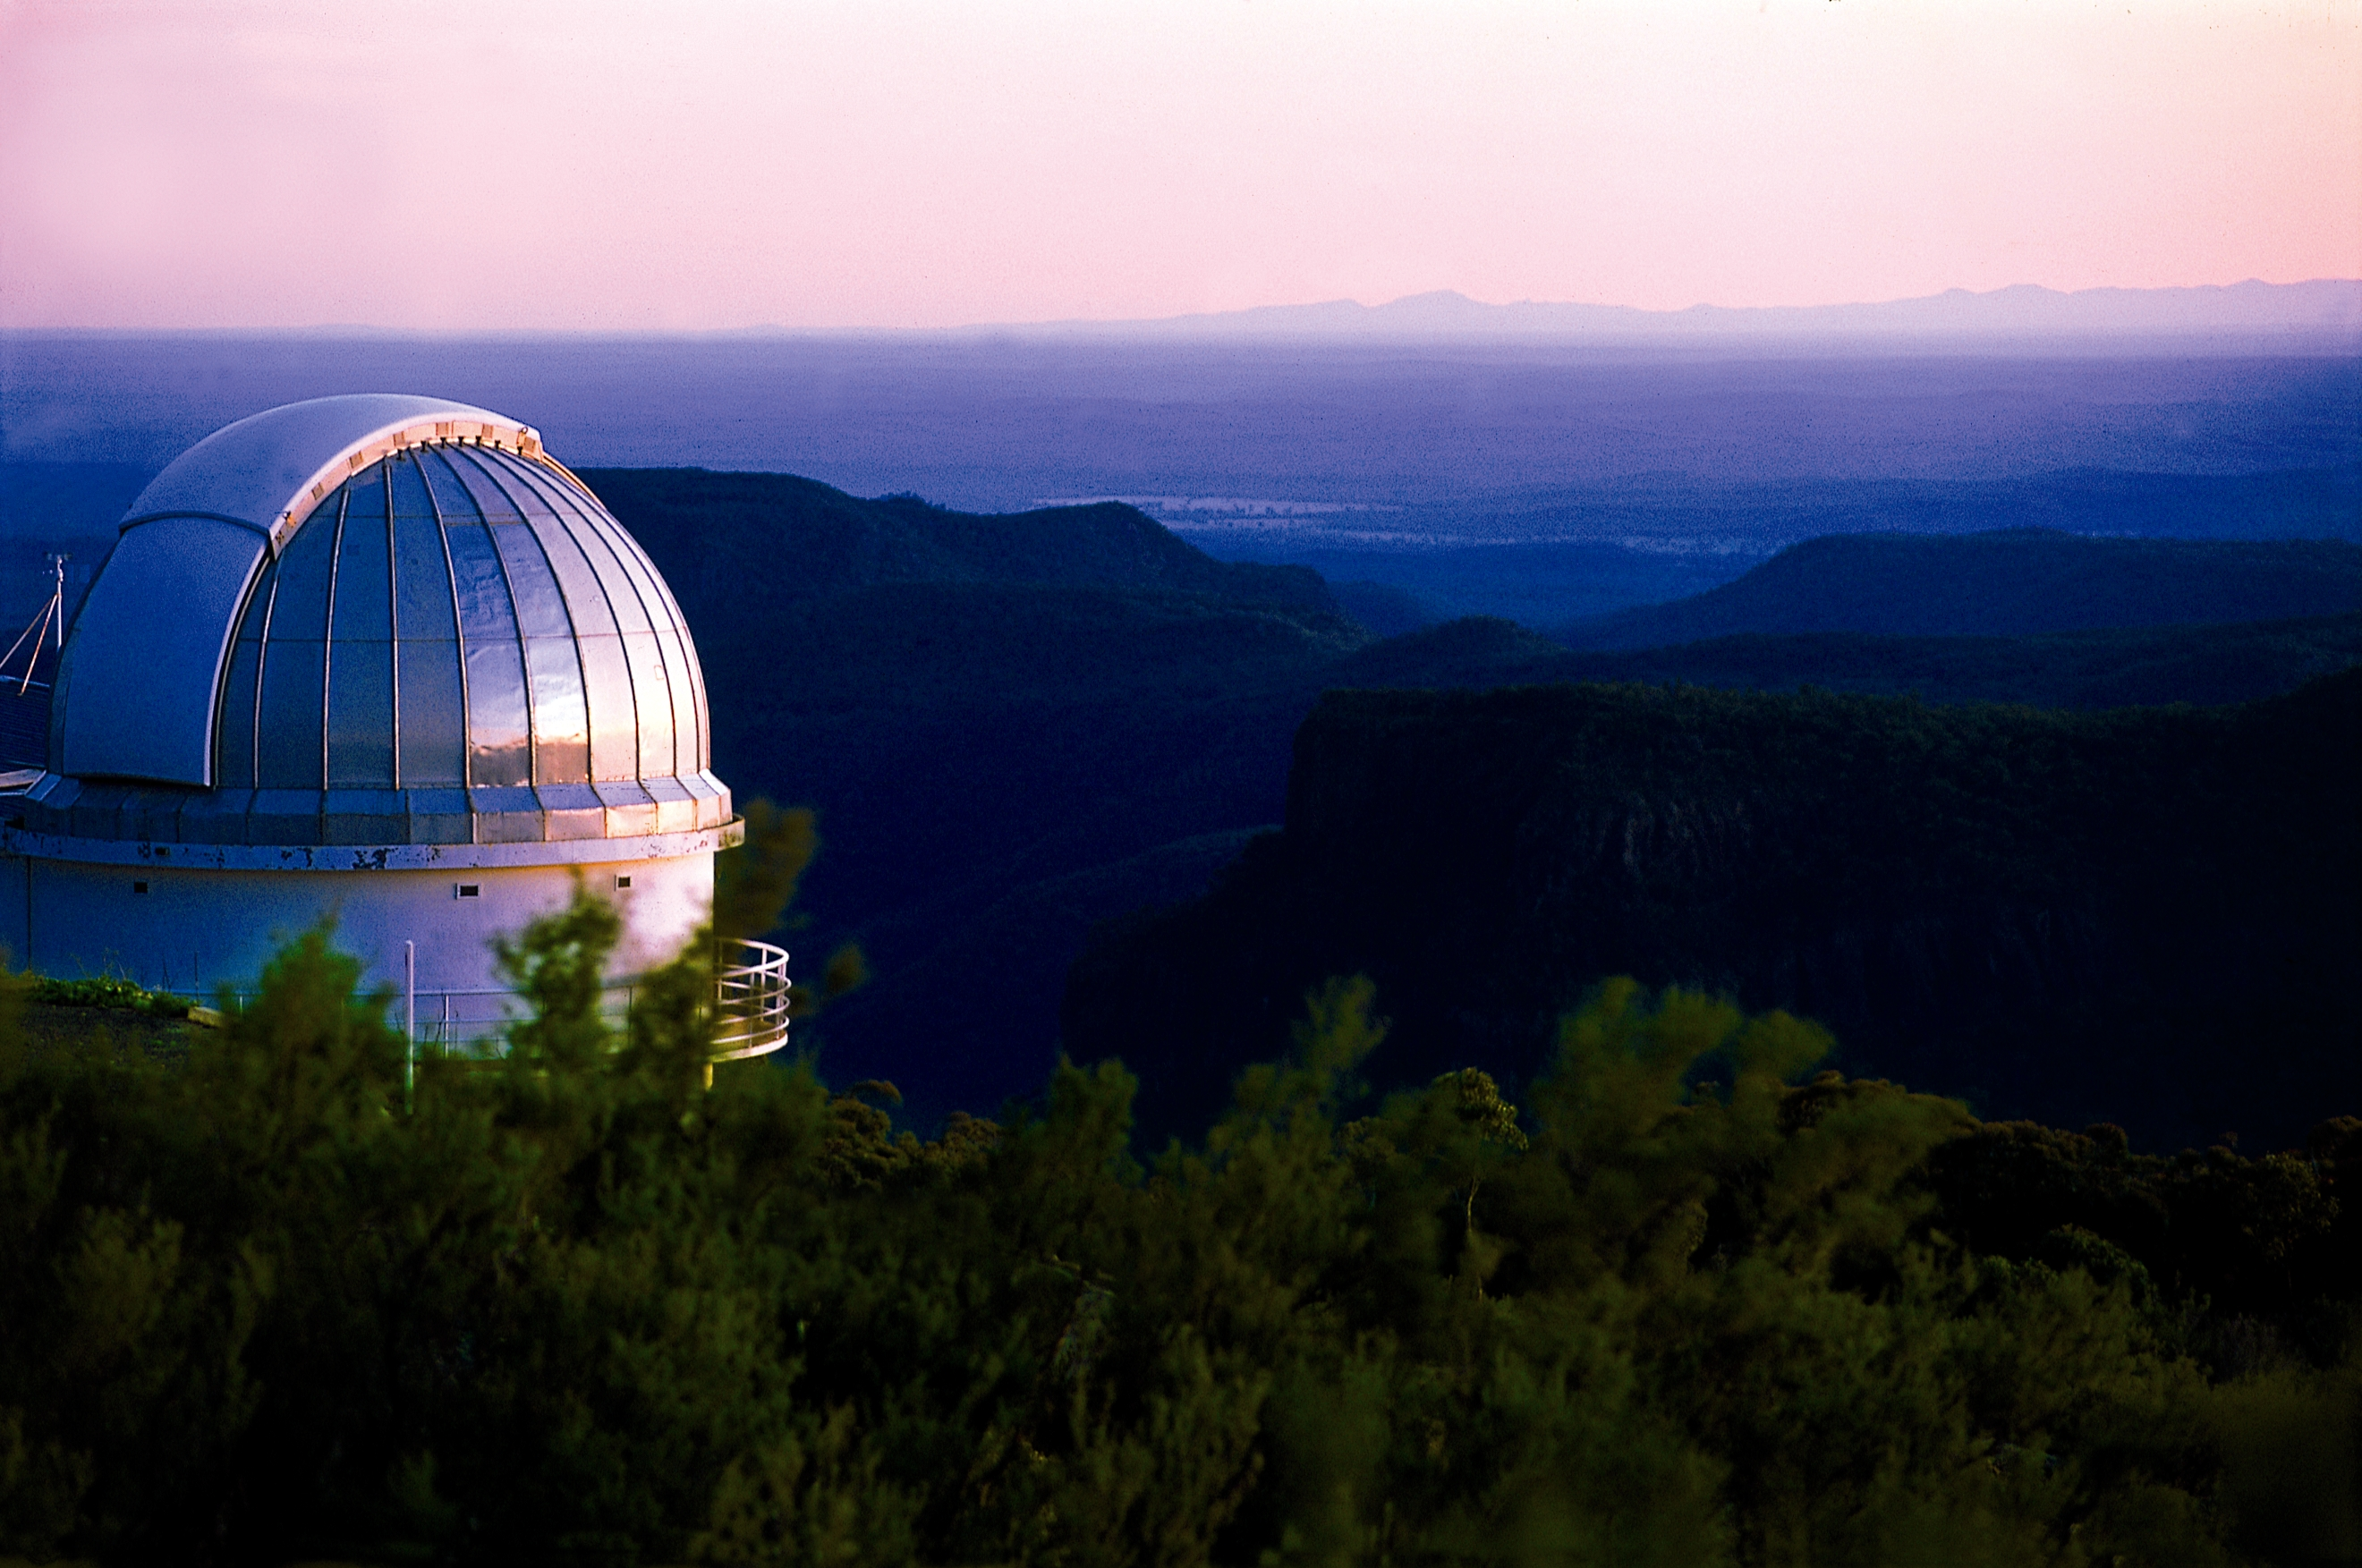 051101 Coonabarabran Siding Spring Observatory - Sunrise with mtn view CR DK